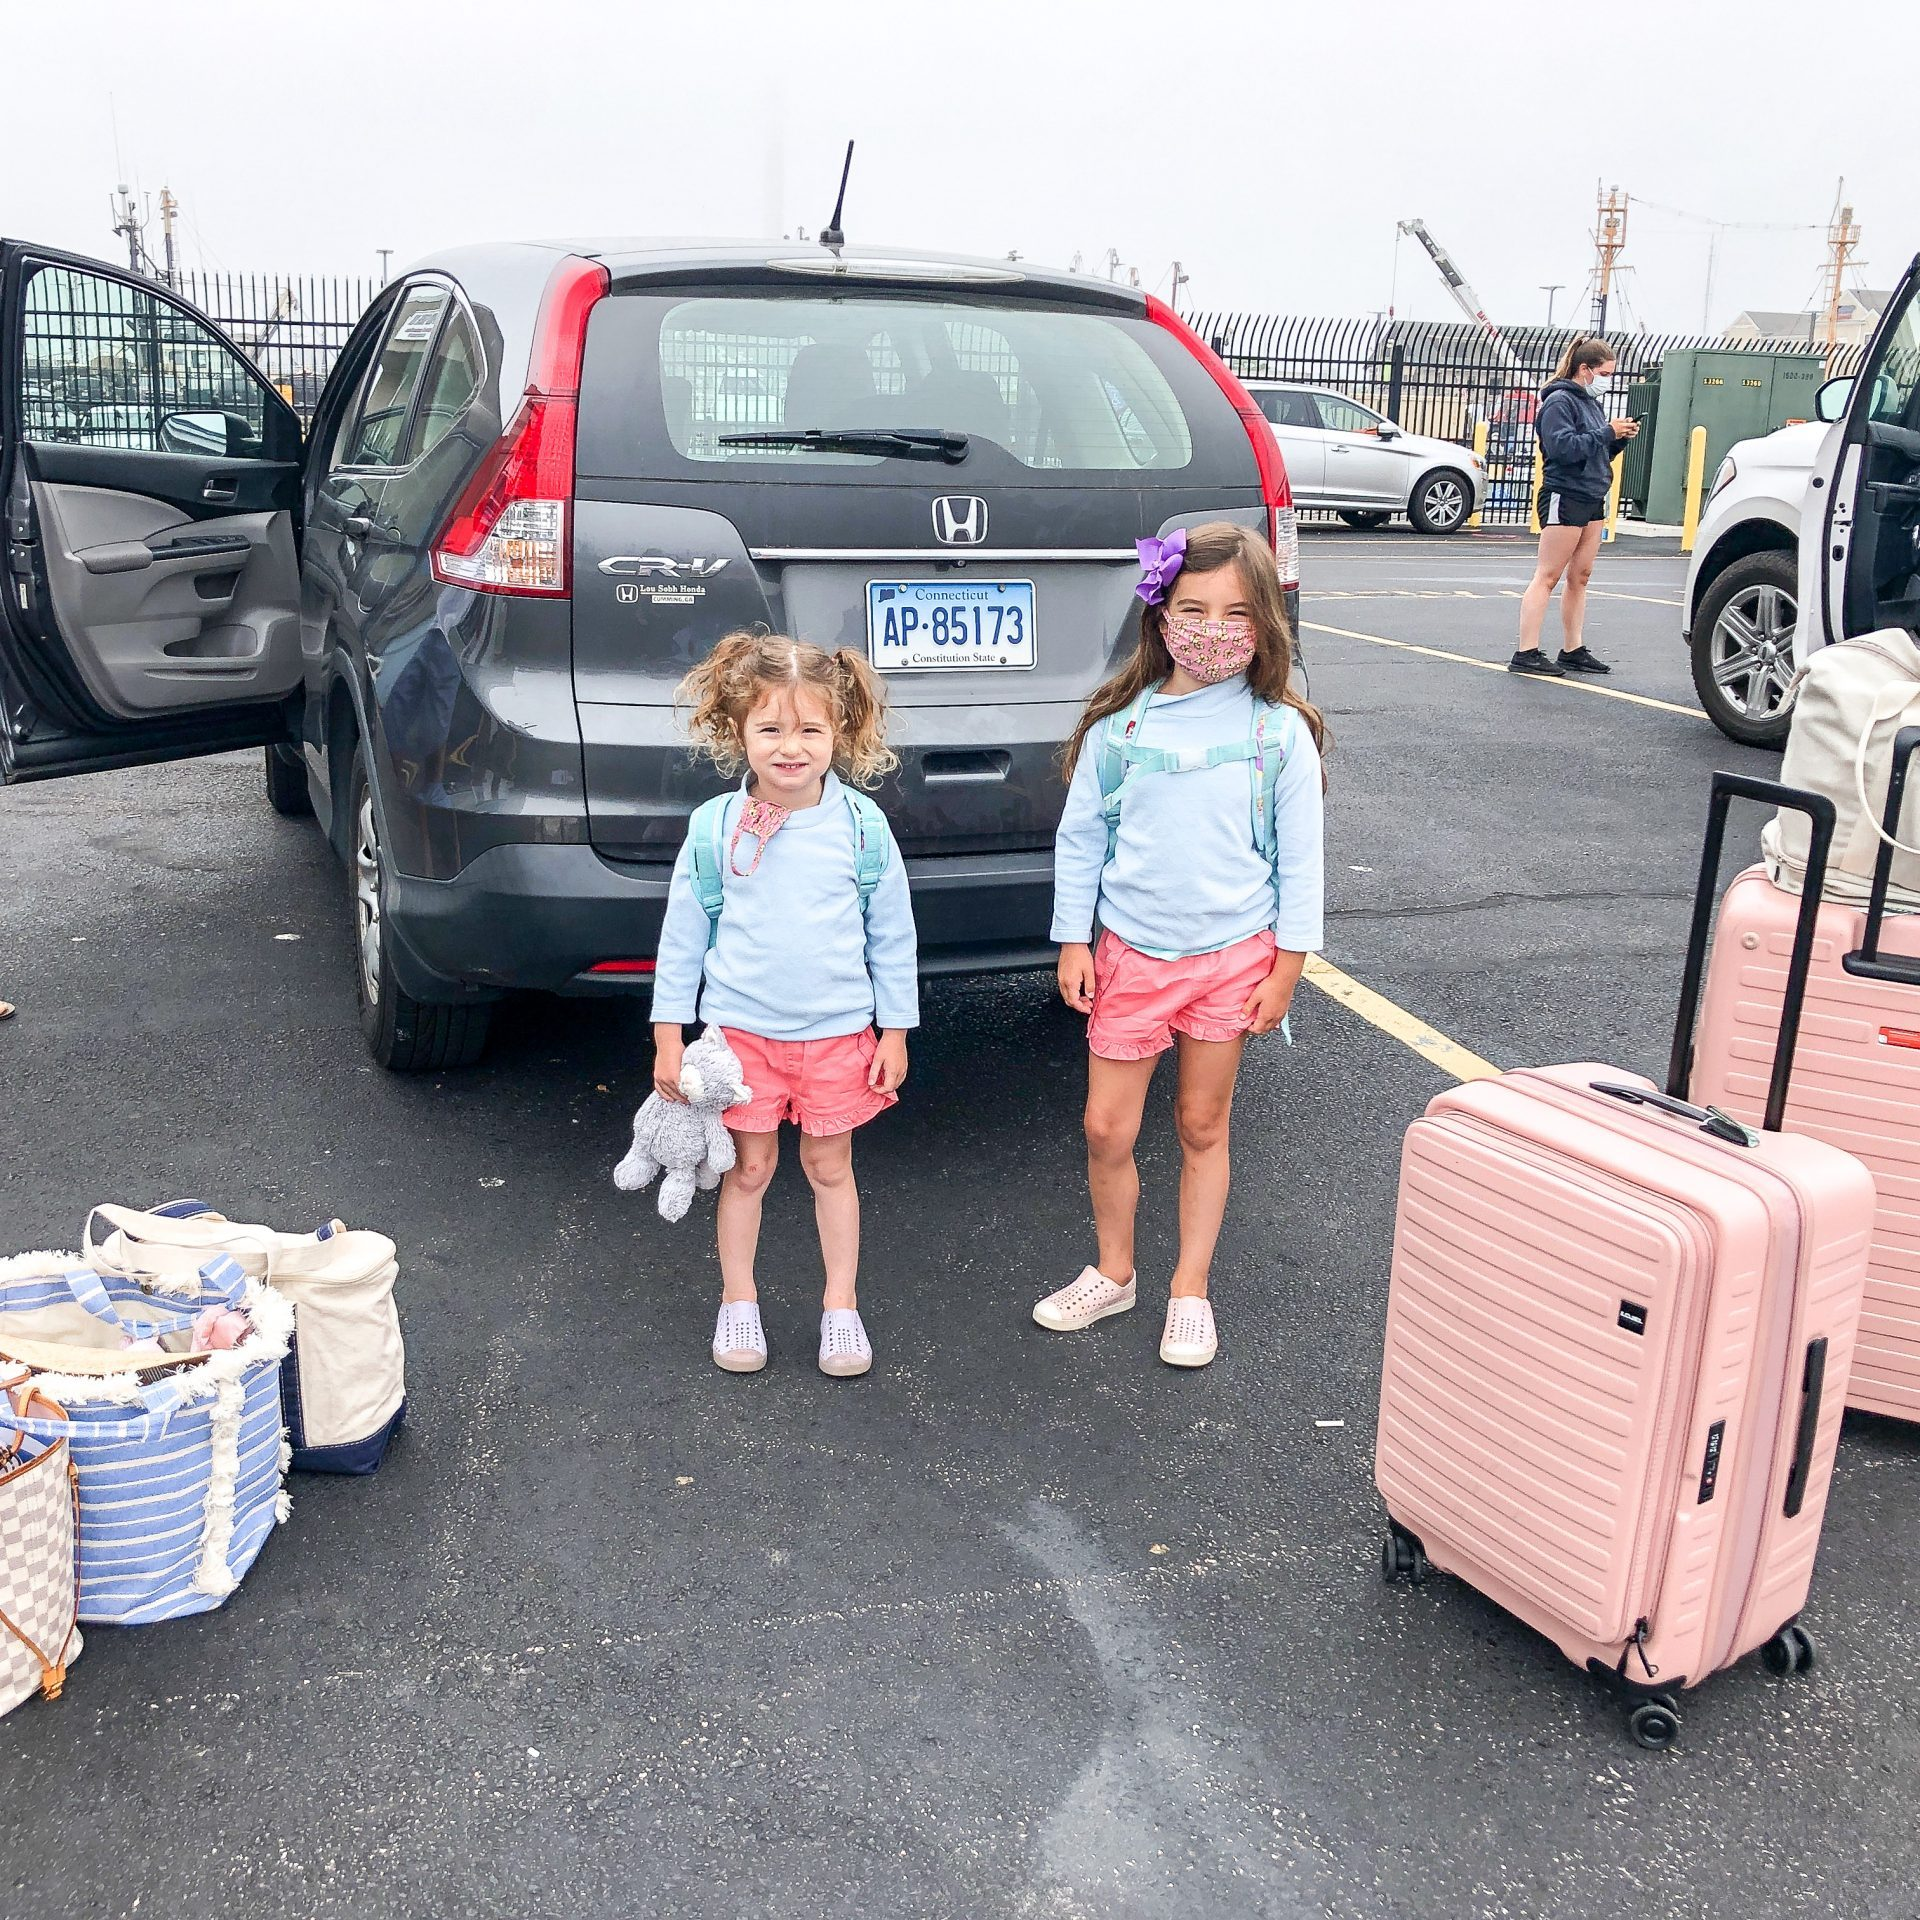 little girls with luggage and covid masks at Seastreak valet parking